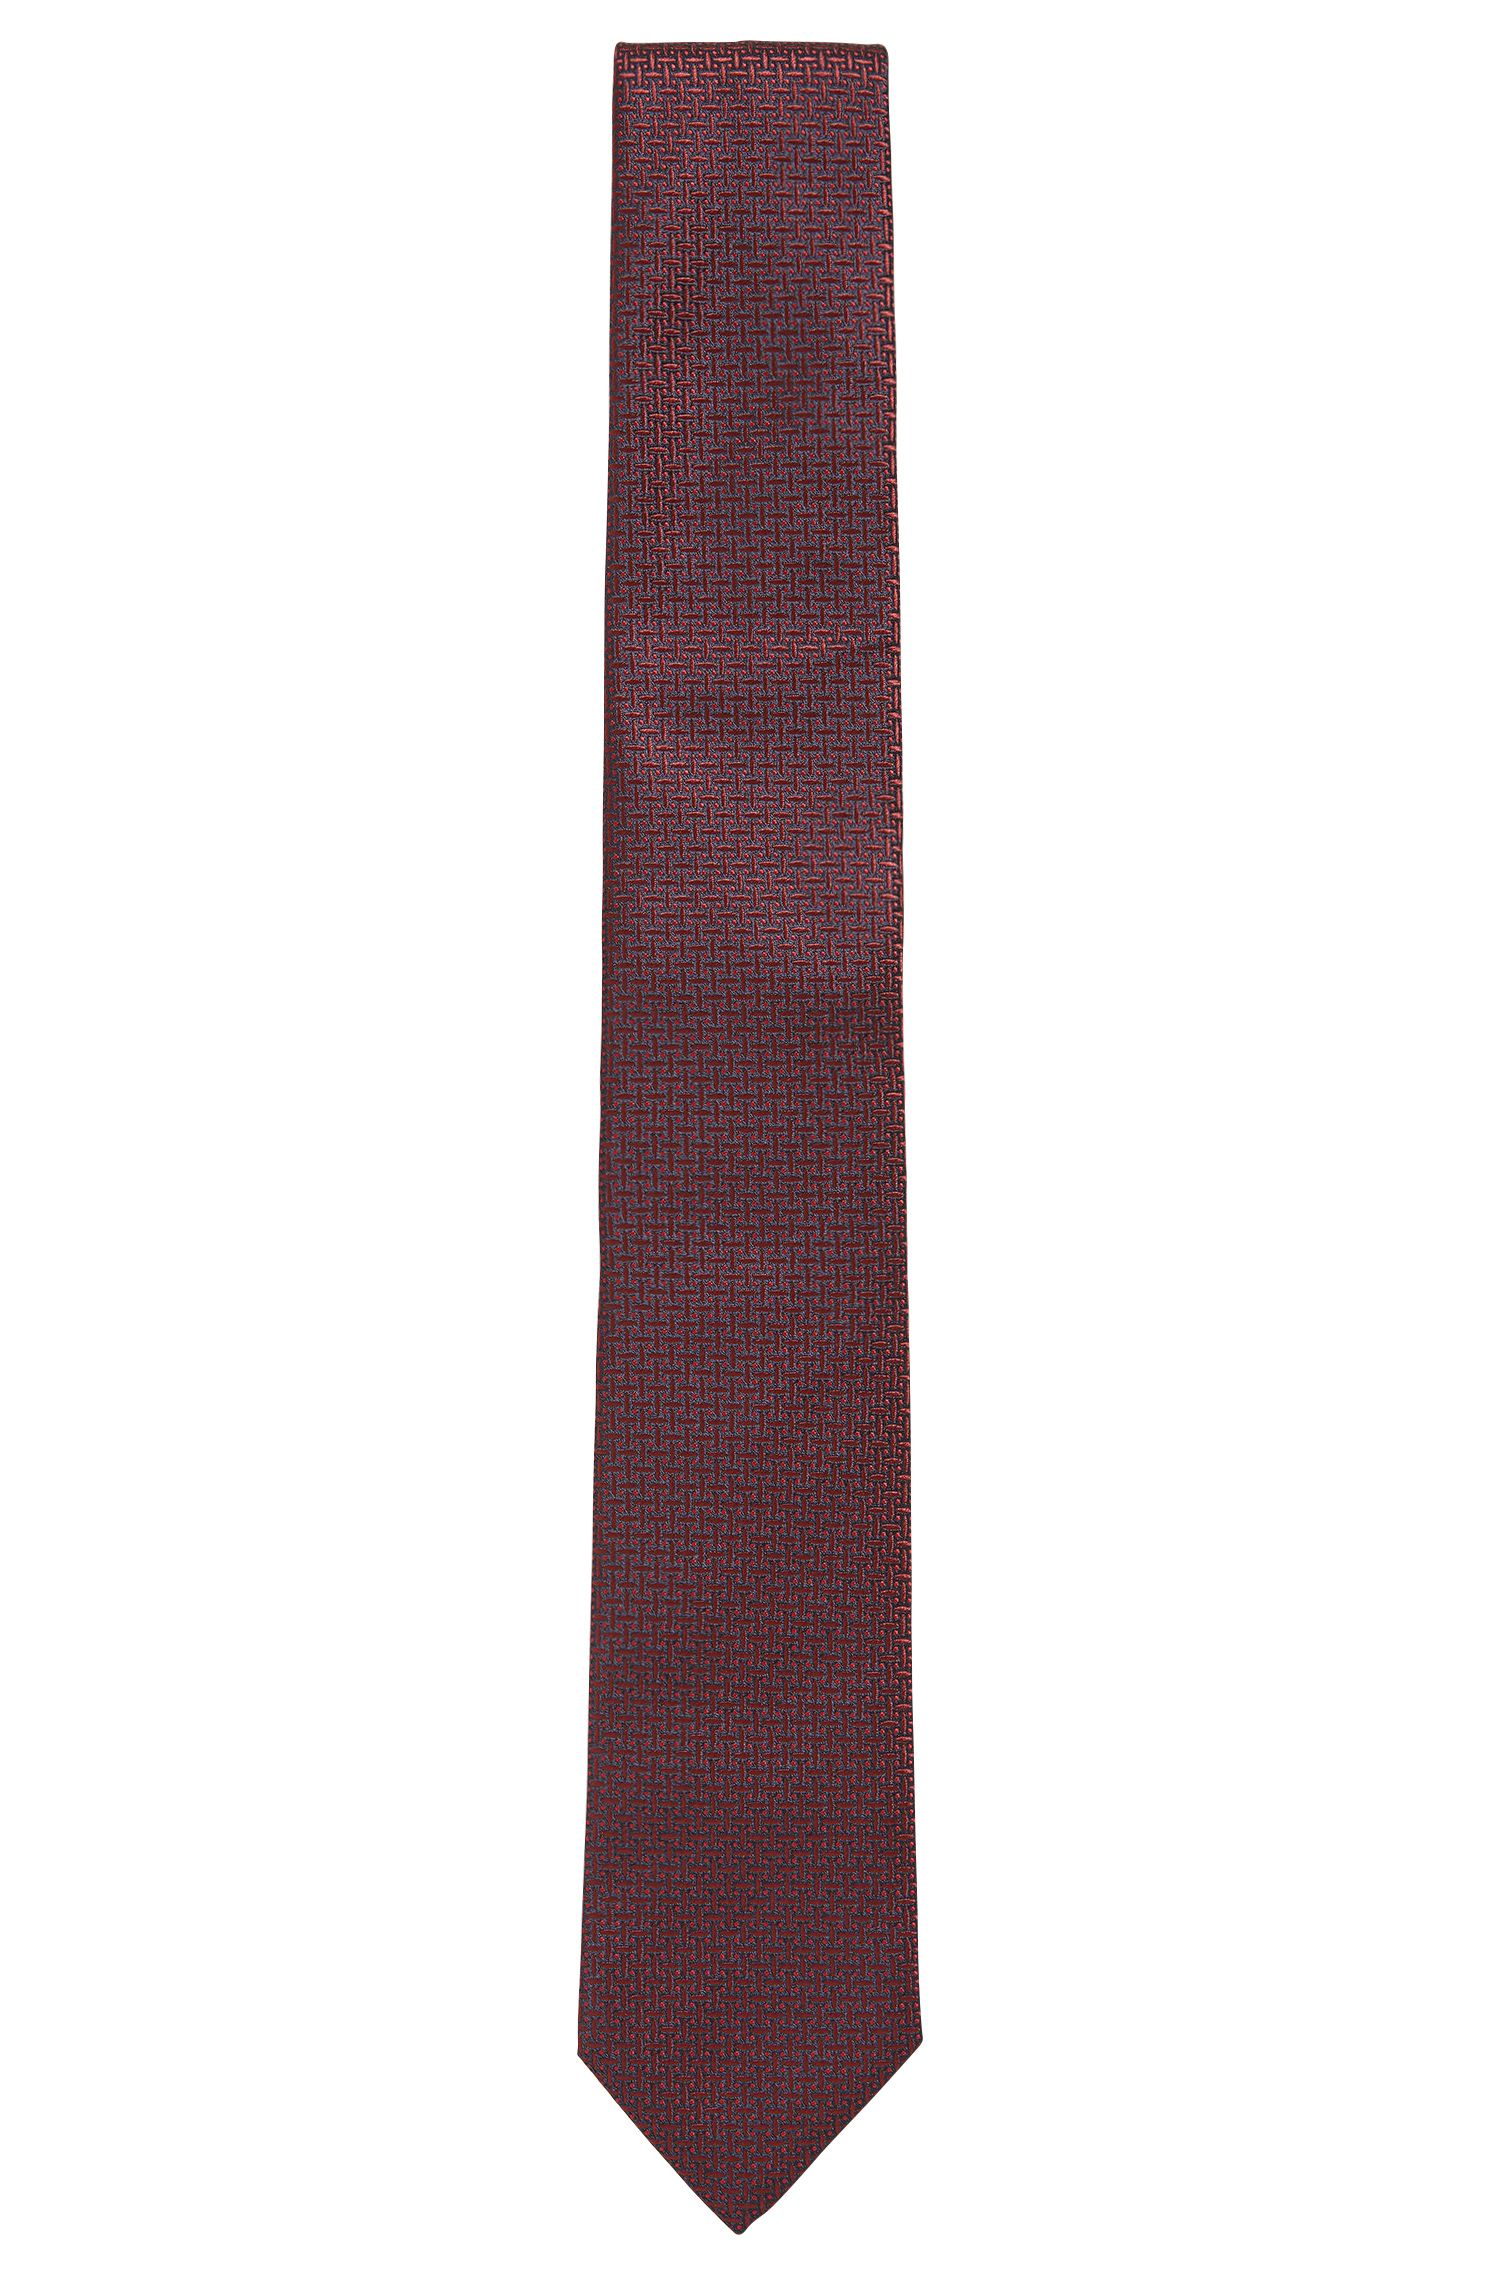 Silk tie in a micro-patterned jacquard